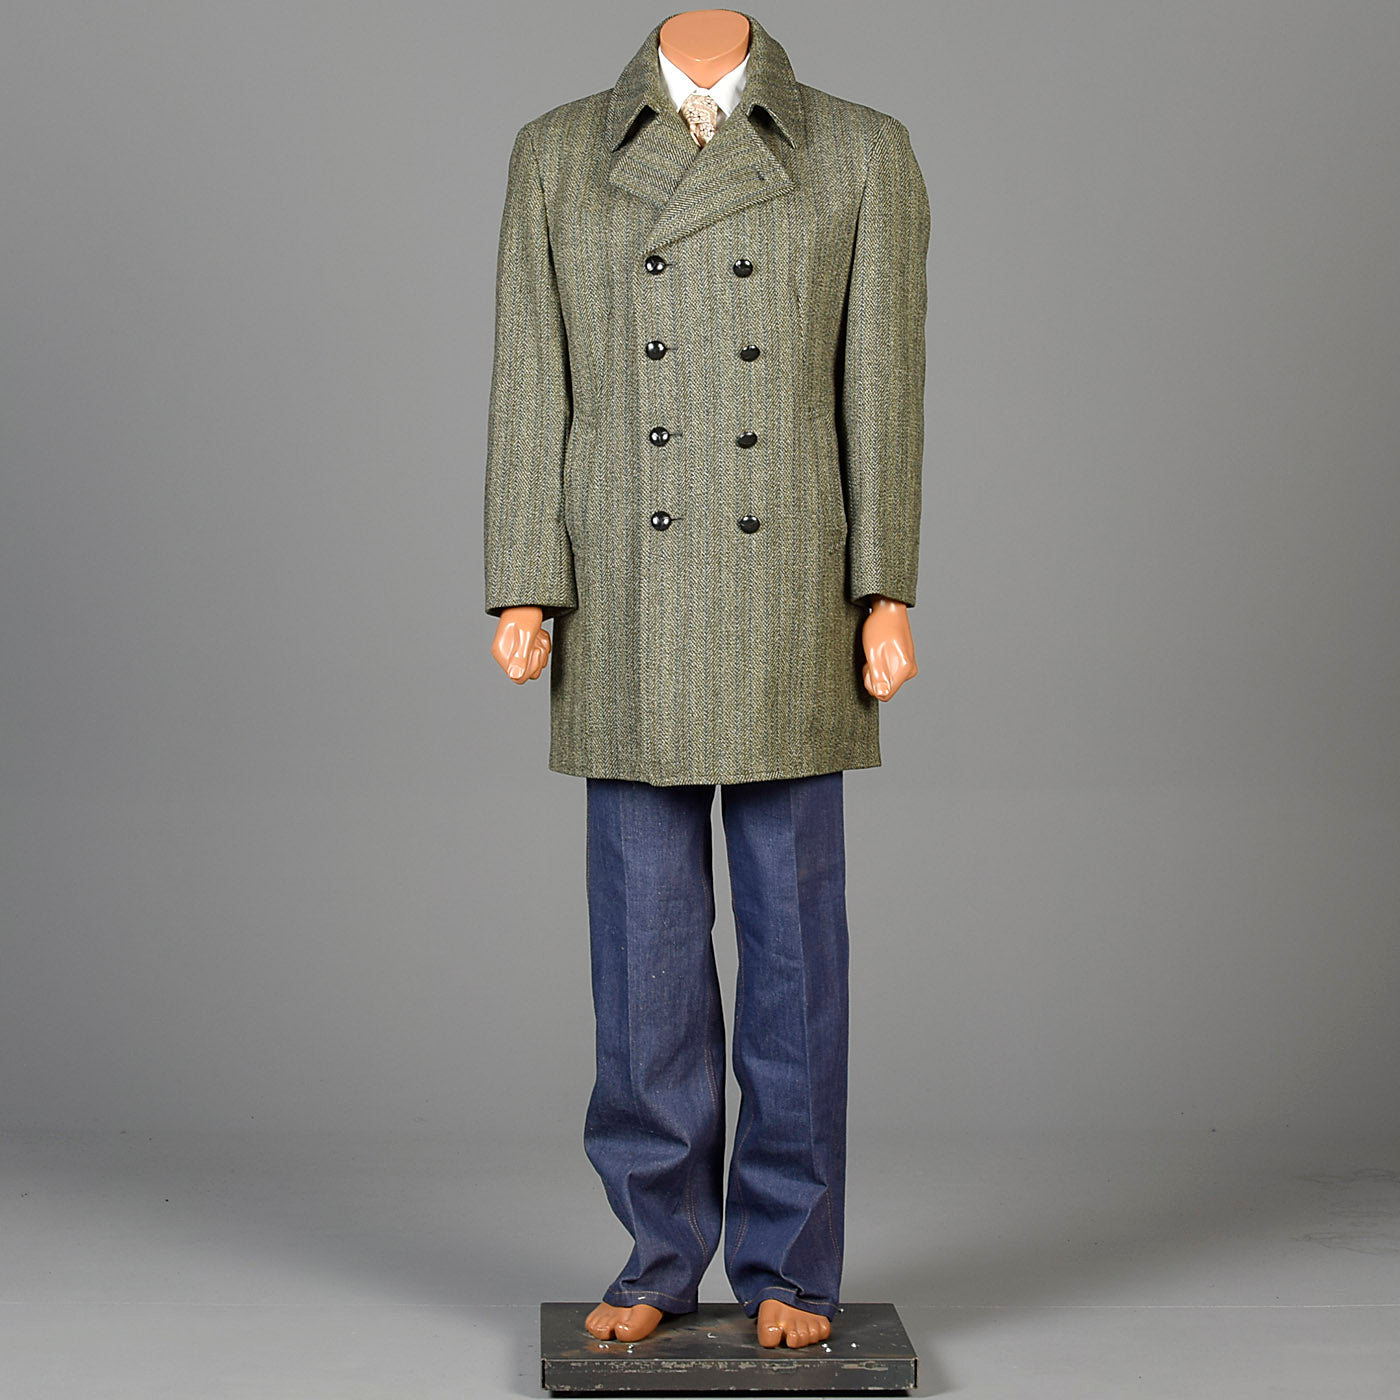 1970s Mens Mod Tweed Winter Coat